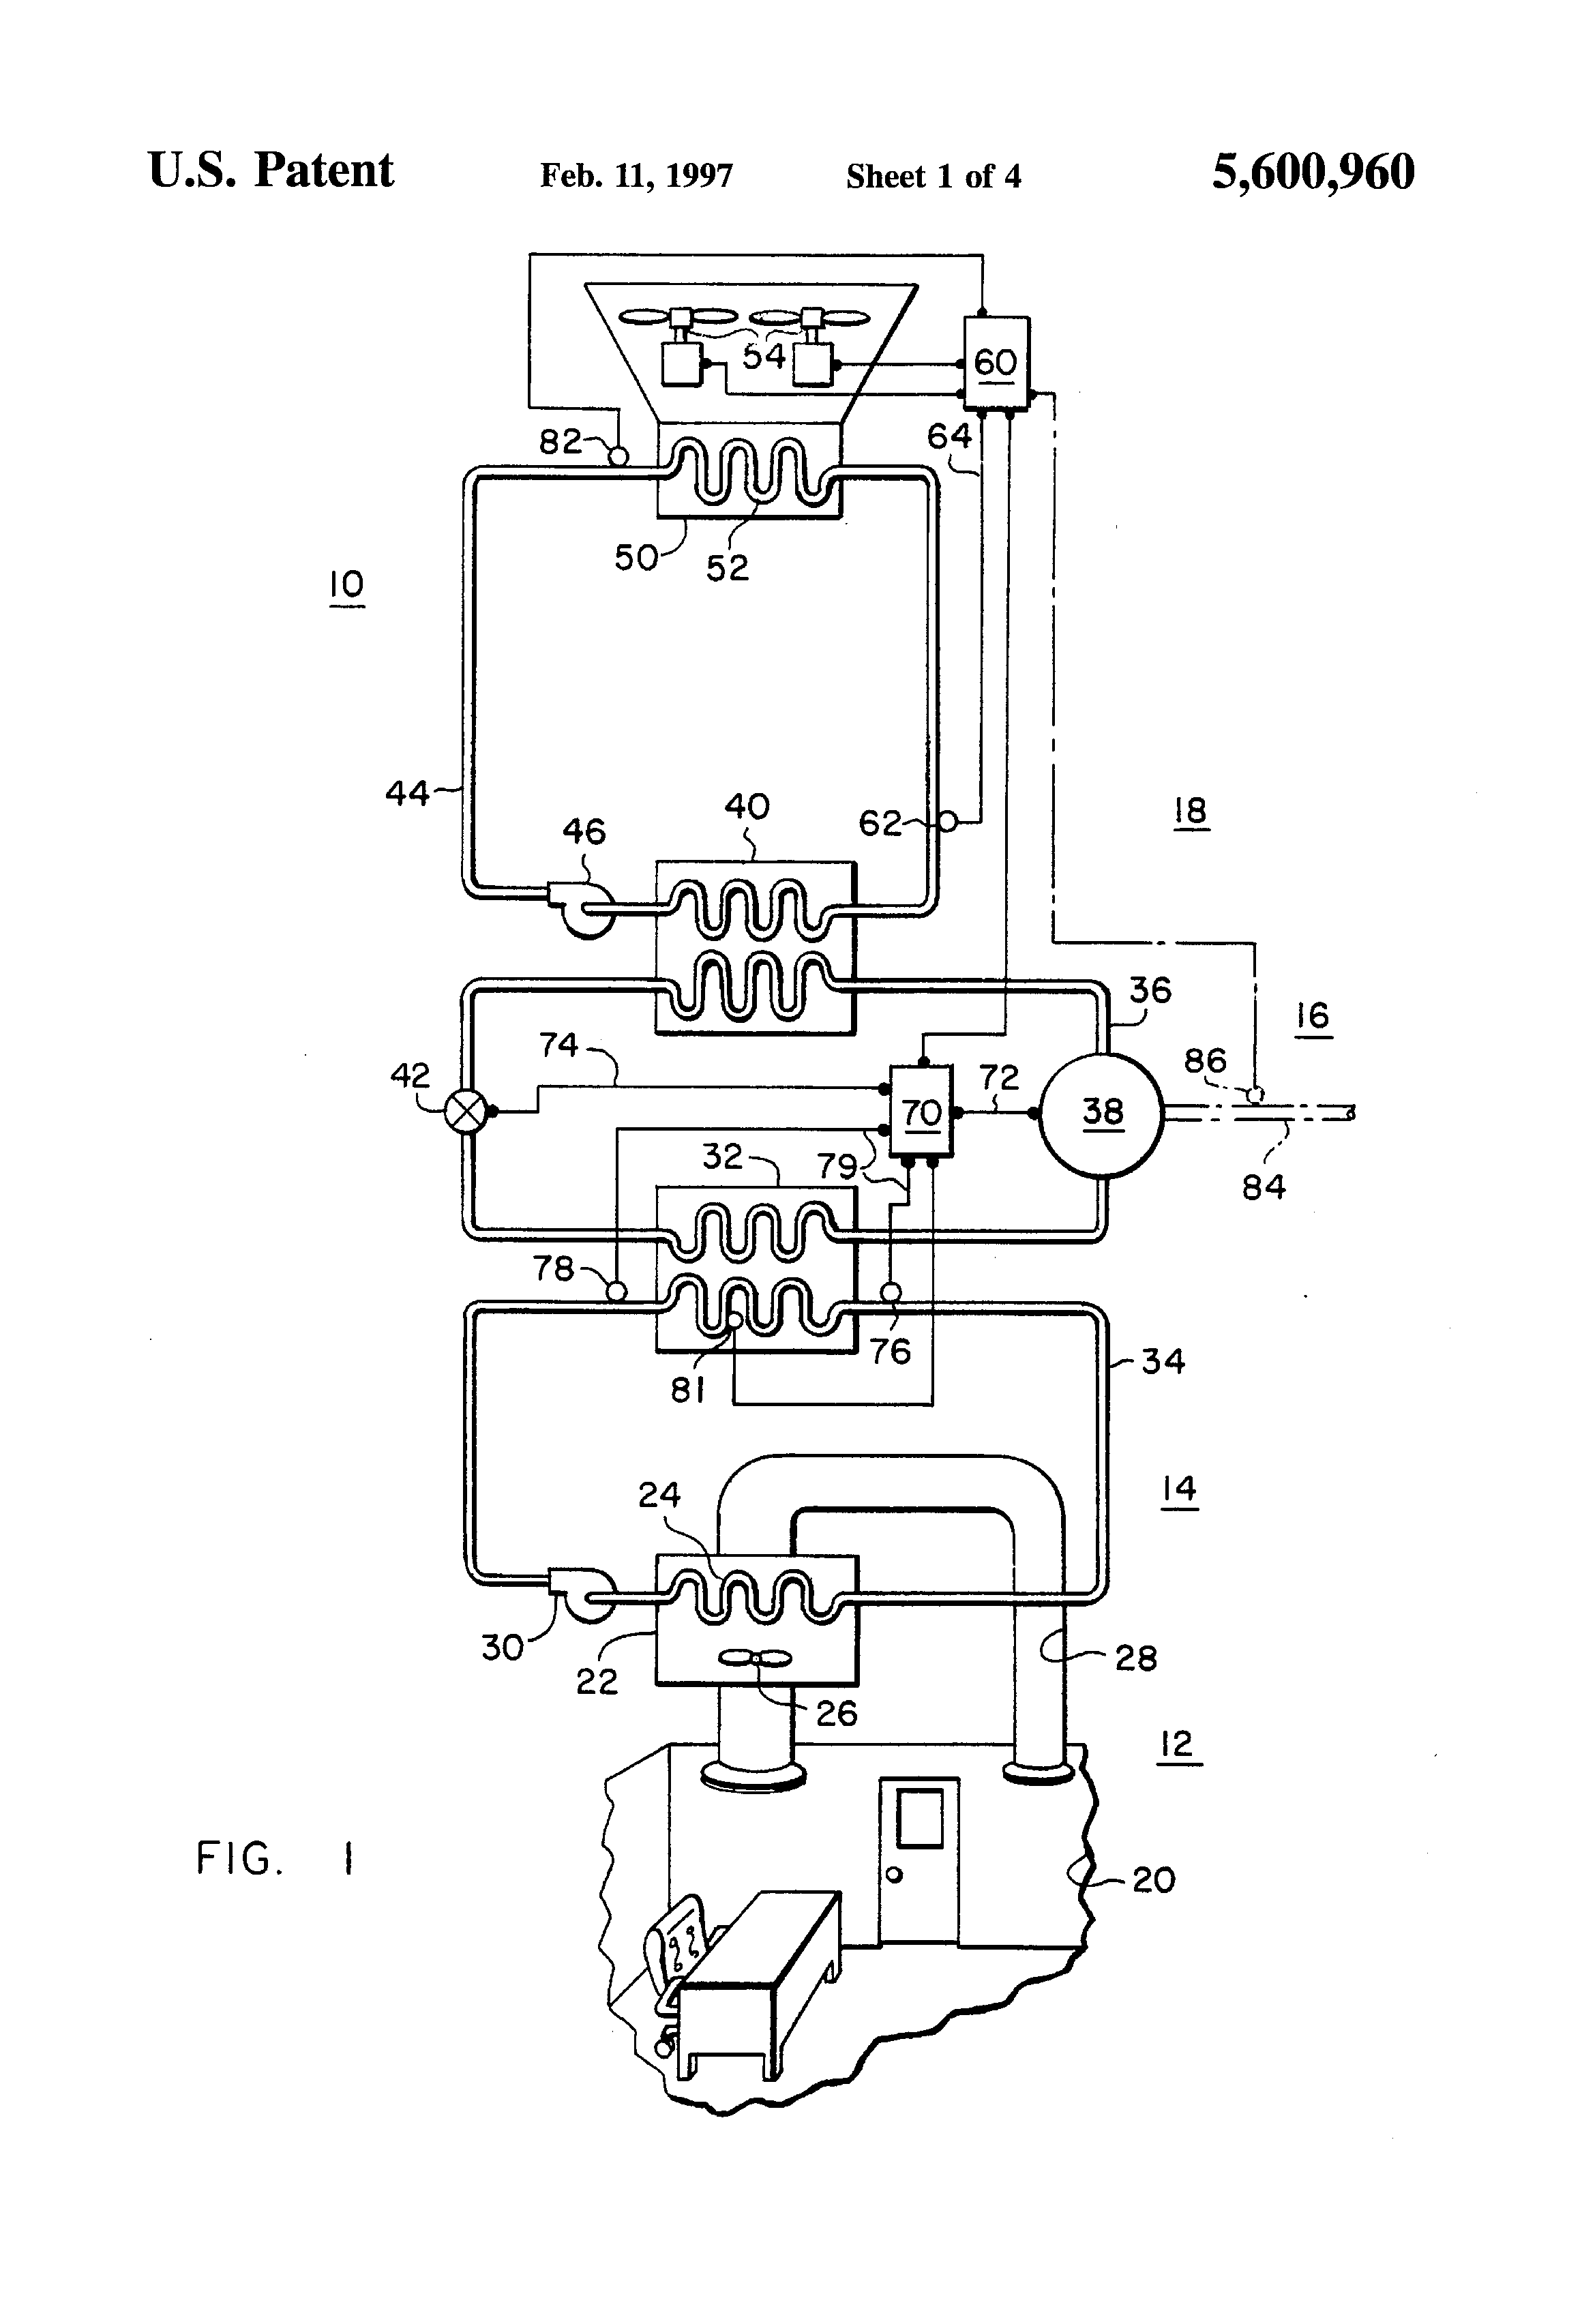 Near optimization of cooling tower condenser water   Patents #3F3F3F